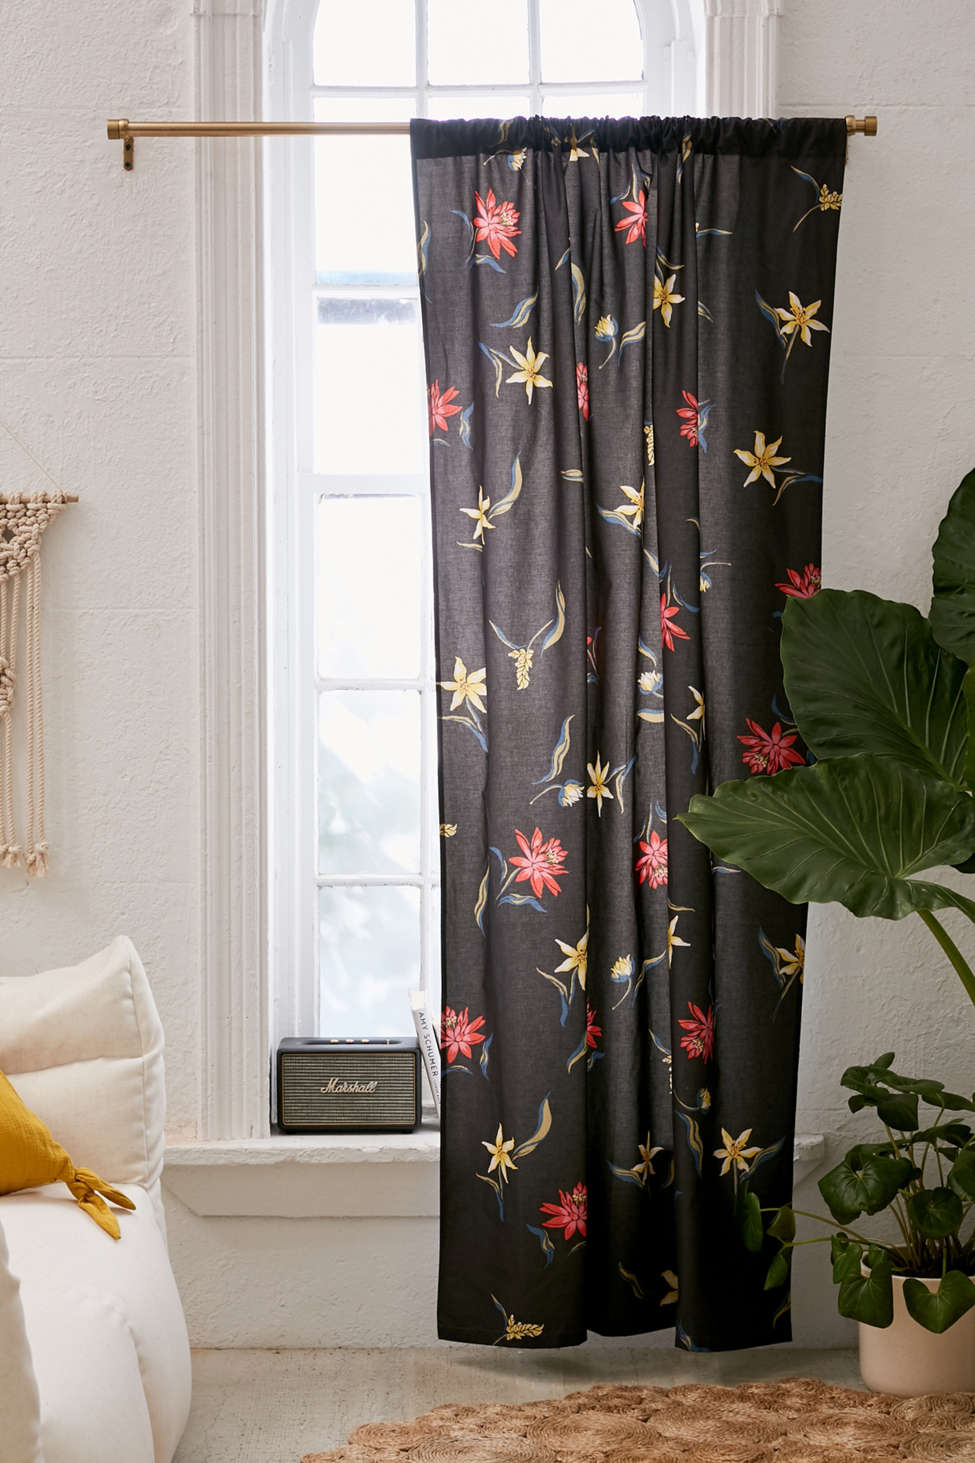 Slide View: 1: Tossed Topical Floral Blackout Curtain